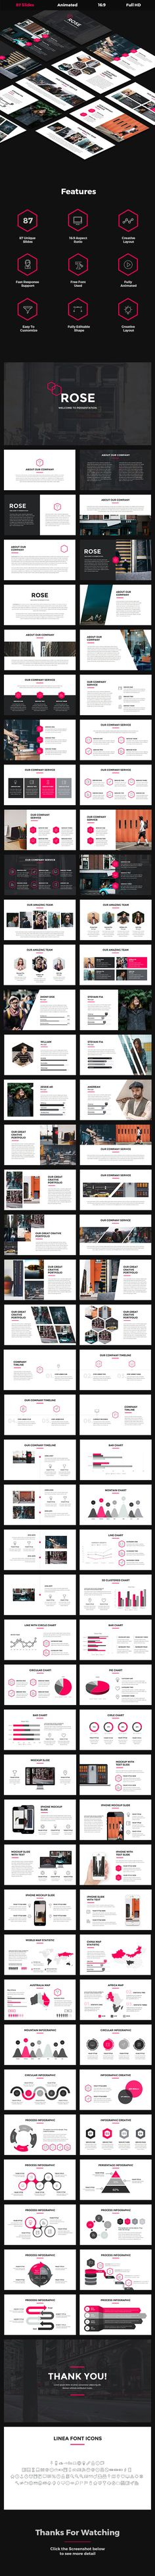 Buy Rose - Creative Keynote Template by rapidpixel on GraphicRiver. Rose – Creative Keynote Template Features: 83 Unique Creative Slides Smart and Innovative Presentation Slides Modern. Company Presentation, Marketing Presentation, Corporate Presentation, Presentation Slides, Presentation Design, Presentation Templates, Powerpoint Tips, Professional Powerpoint Templates, Creative Powerpoint Templates